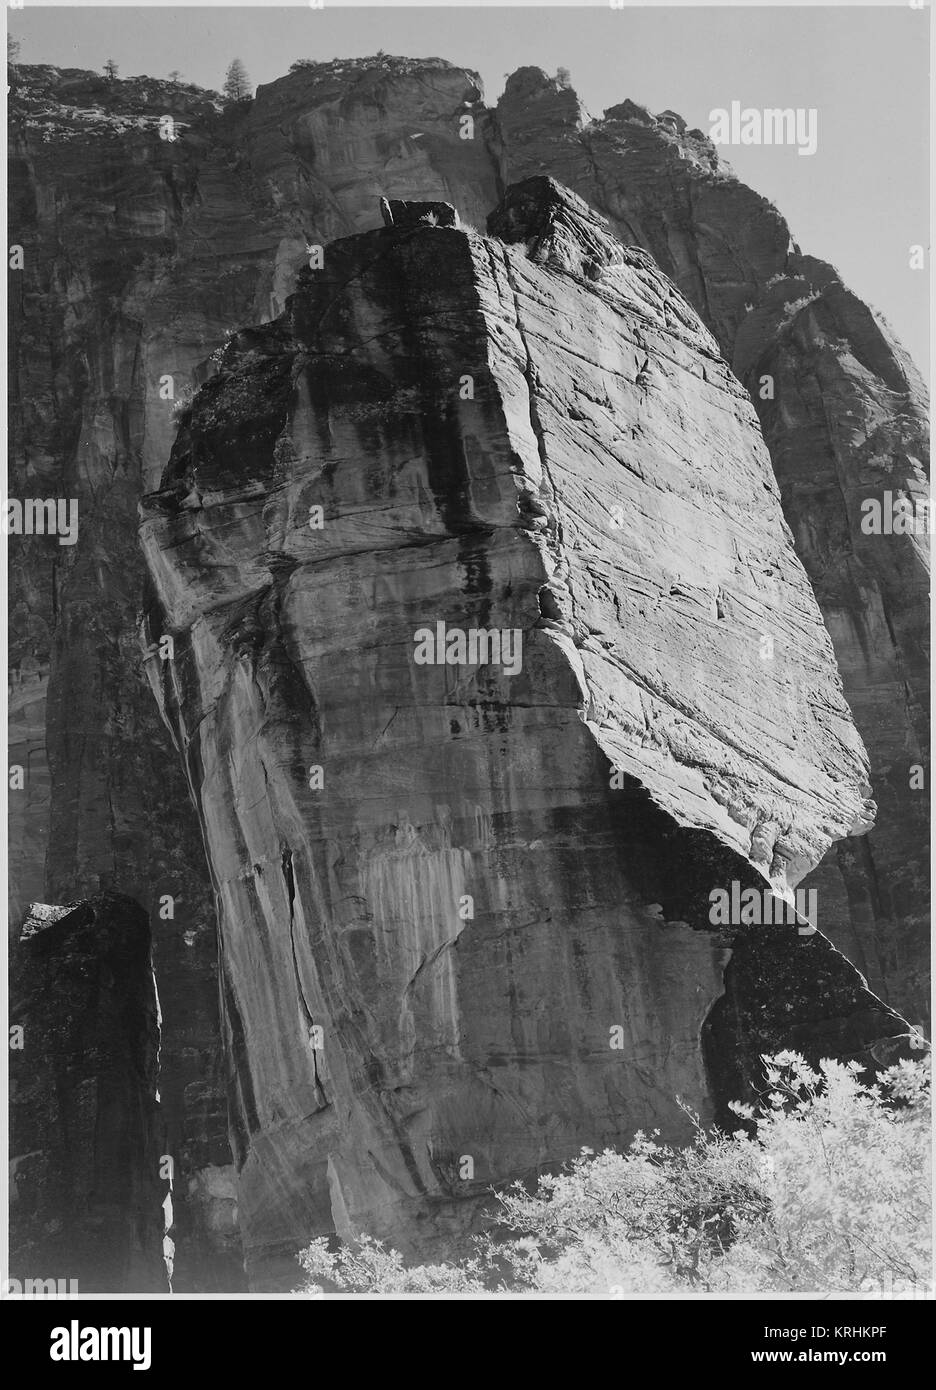 Rock formation from below 'In Zion National Park' Utah. (Vertical orientation) 1933 - 1942 - Stock Image